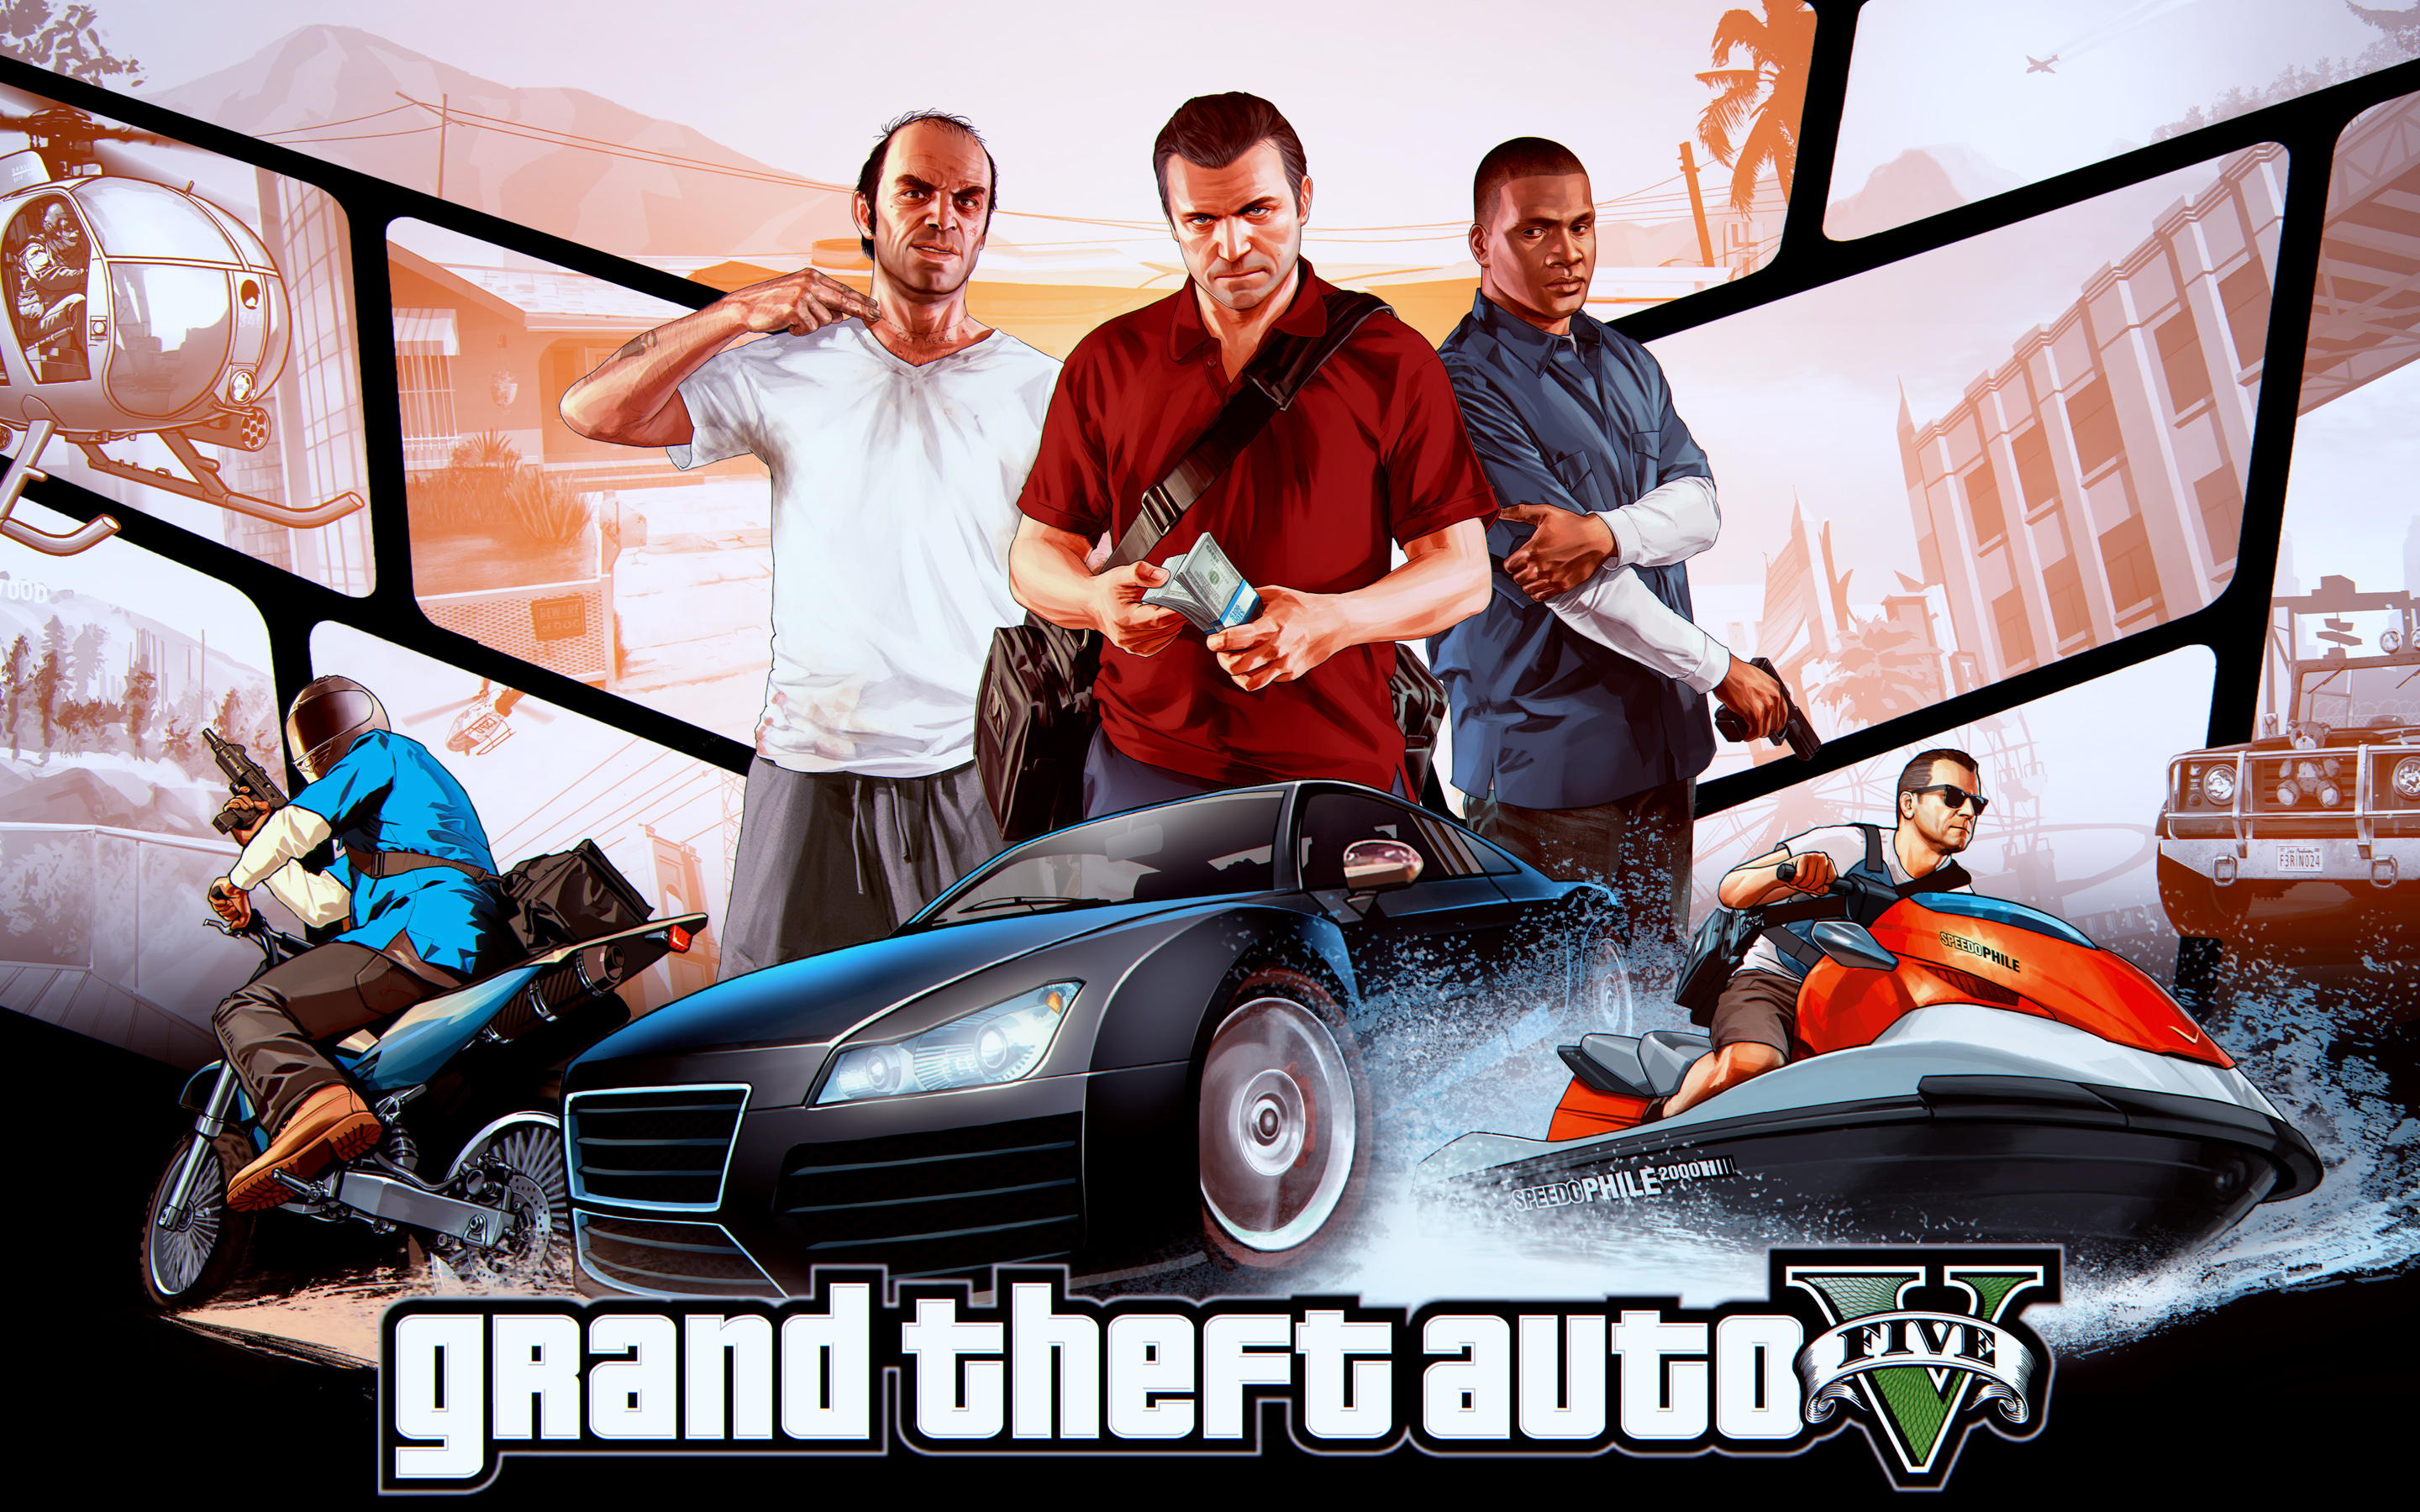 HD Wallpapers Gr Theft Auto V